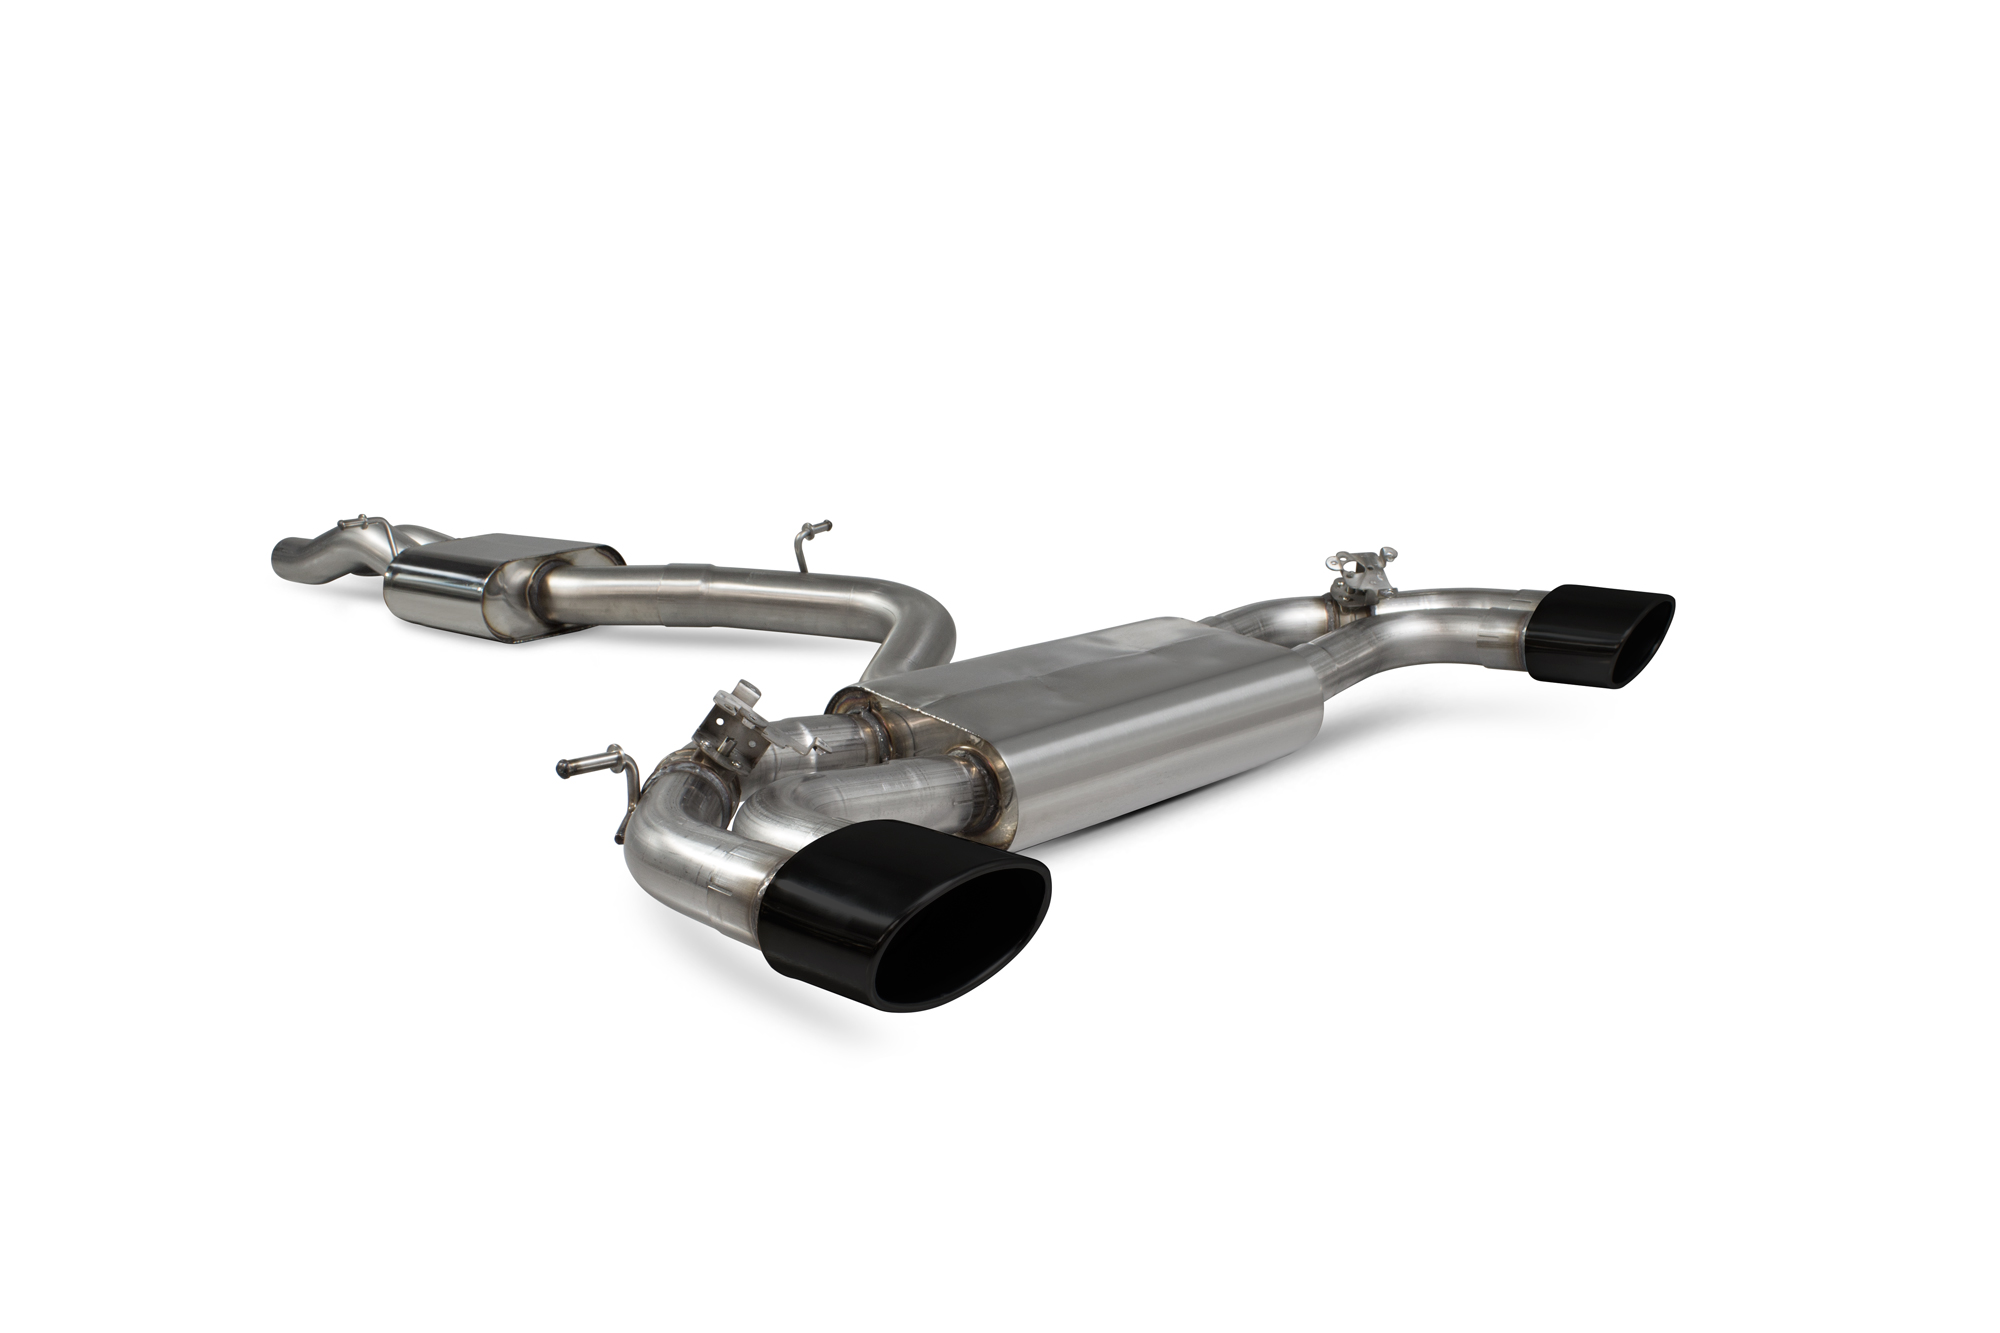 Scorpion Resonated cat-back system with electronic valves Audi RS3 8V Facelift (GPF and non GPF models) SAU079C